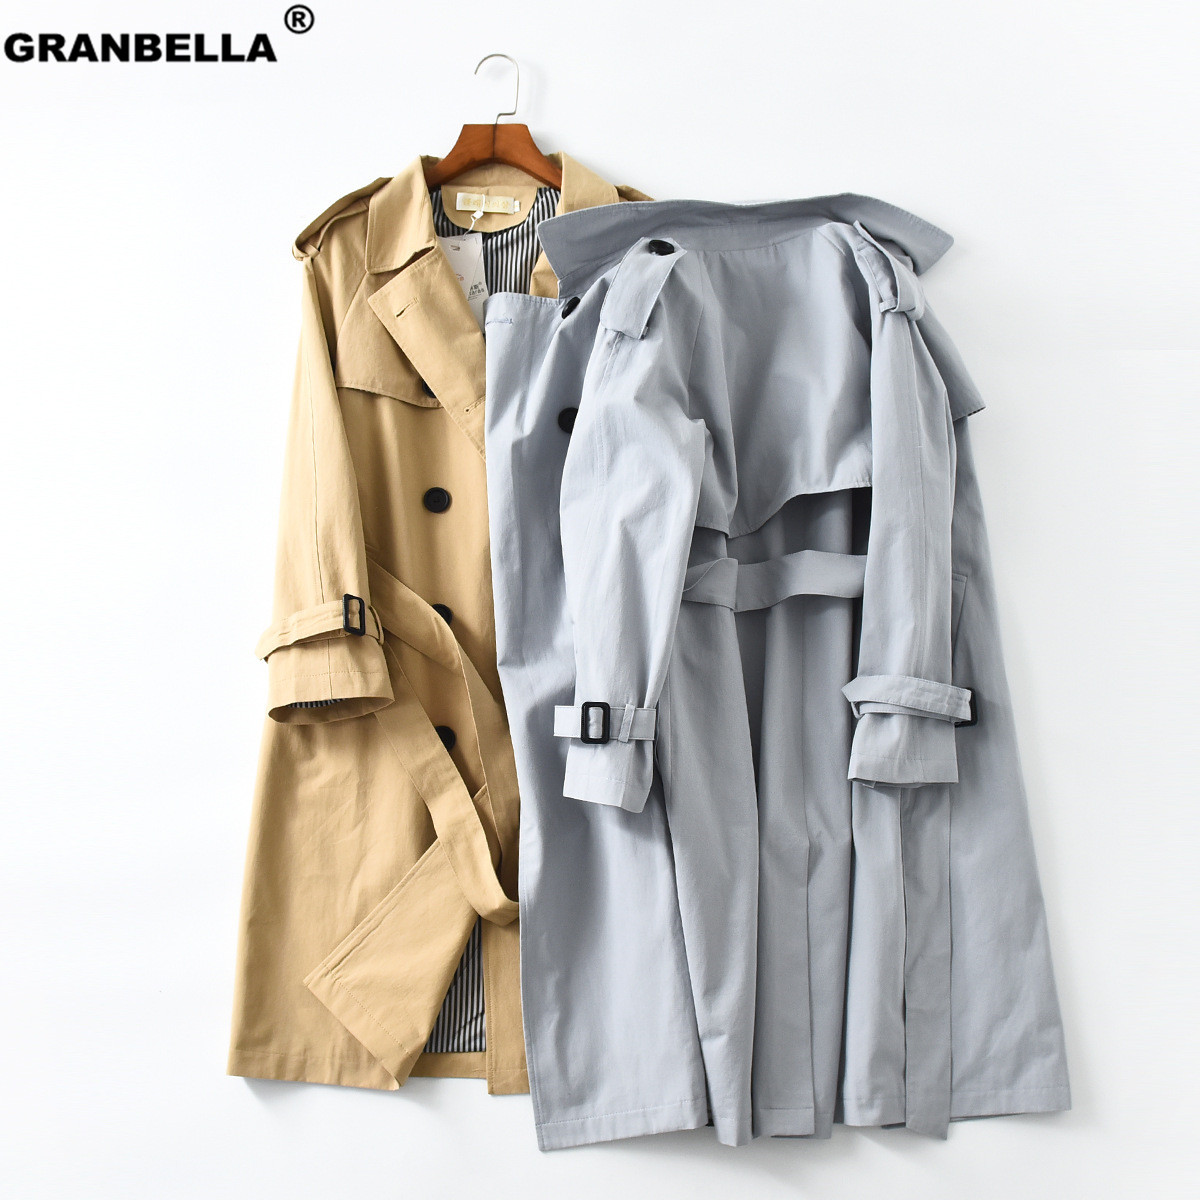 2019 Spring Autumn New Women's Casual   trench   coat oversize Double Breasted Vintage Washed Outwear Loose Cloak Clothing